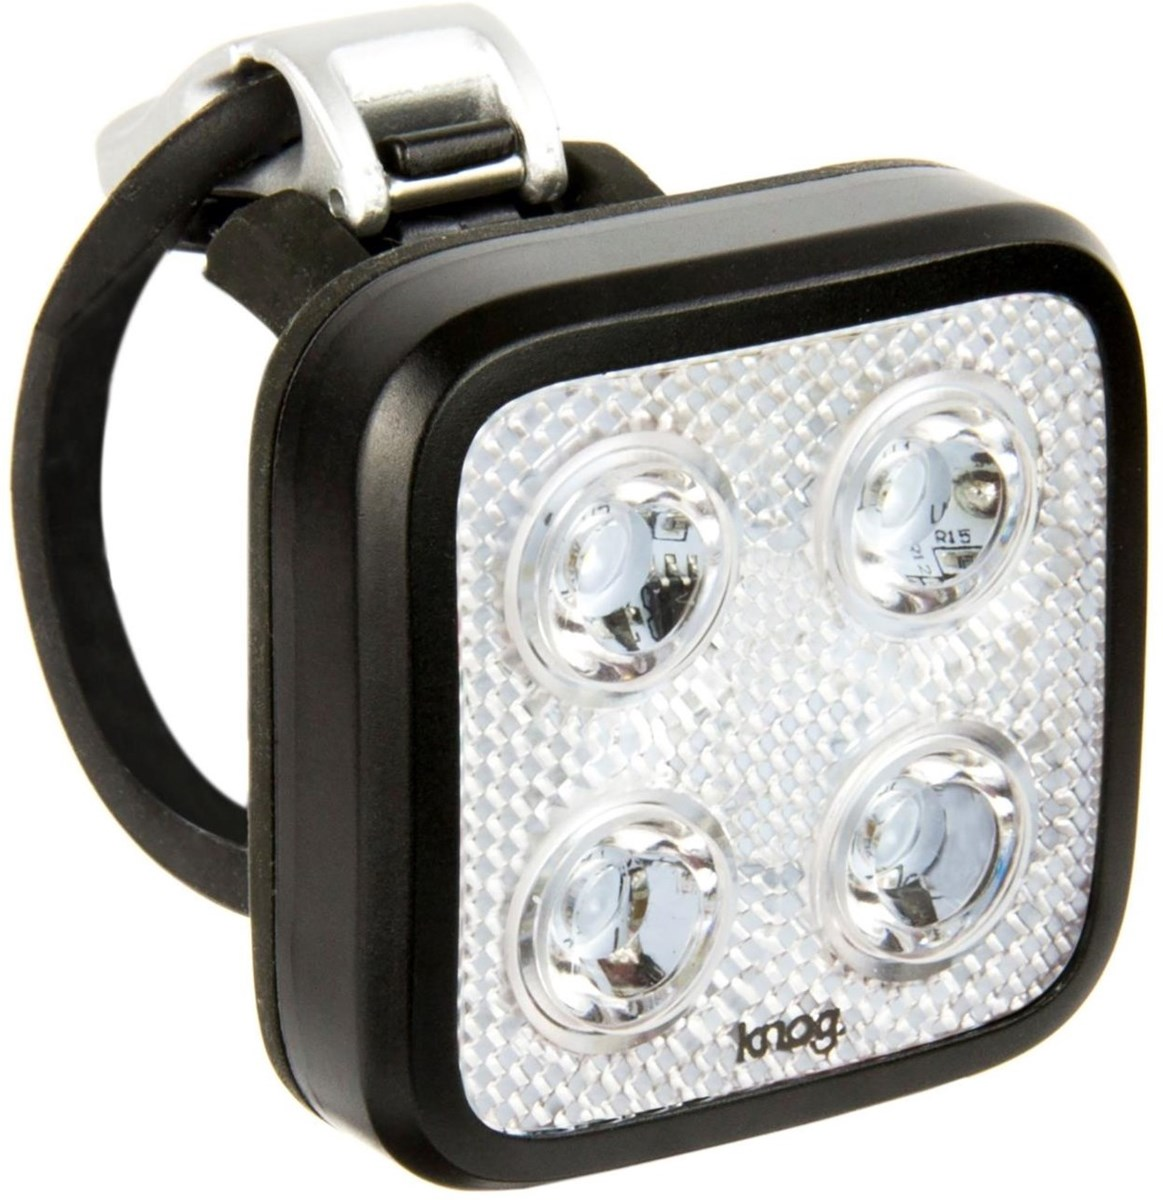 Knog Blinder Mob Four Eyes Rechargeable Front Light